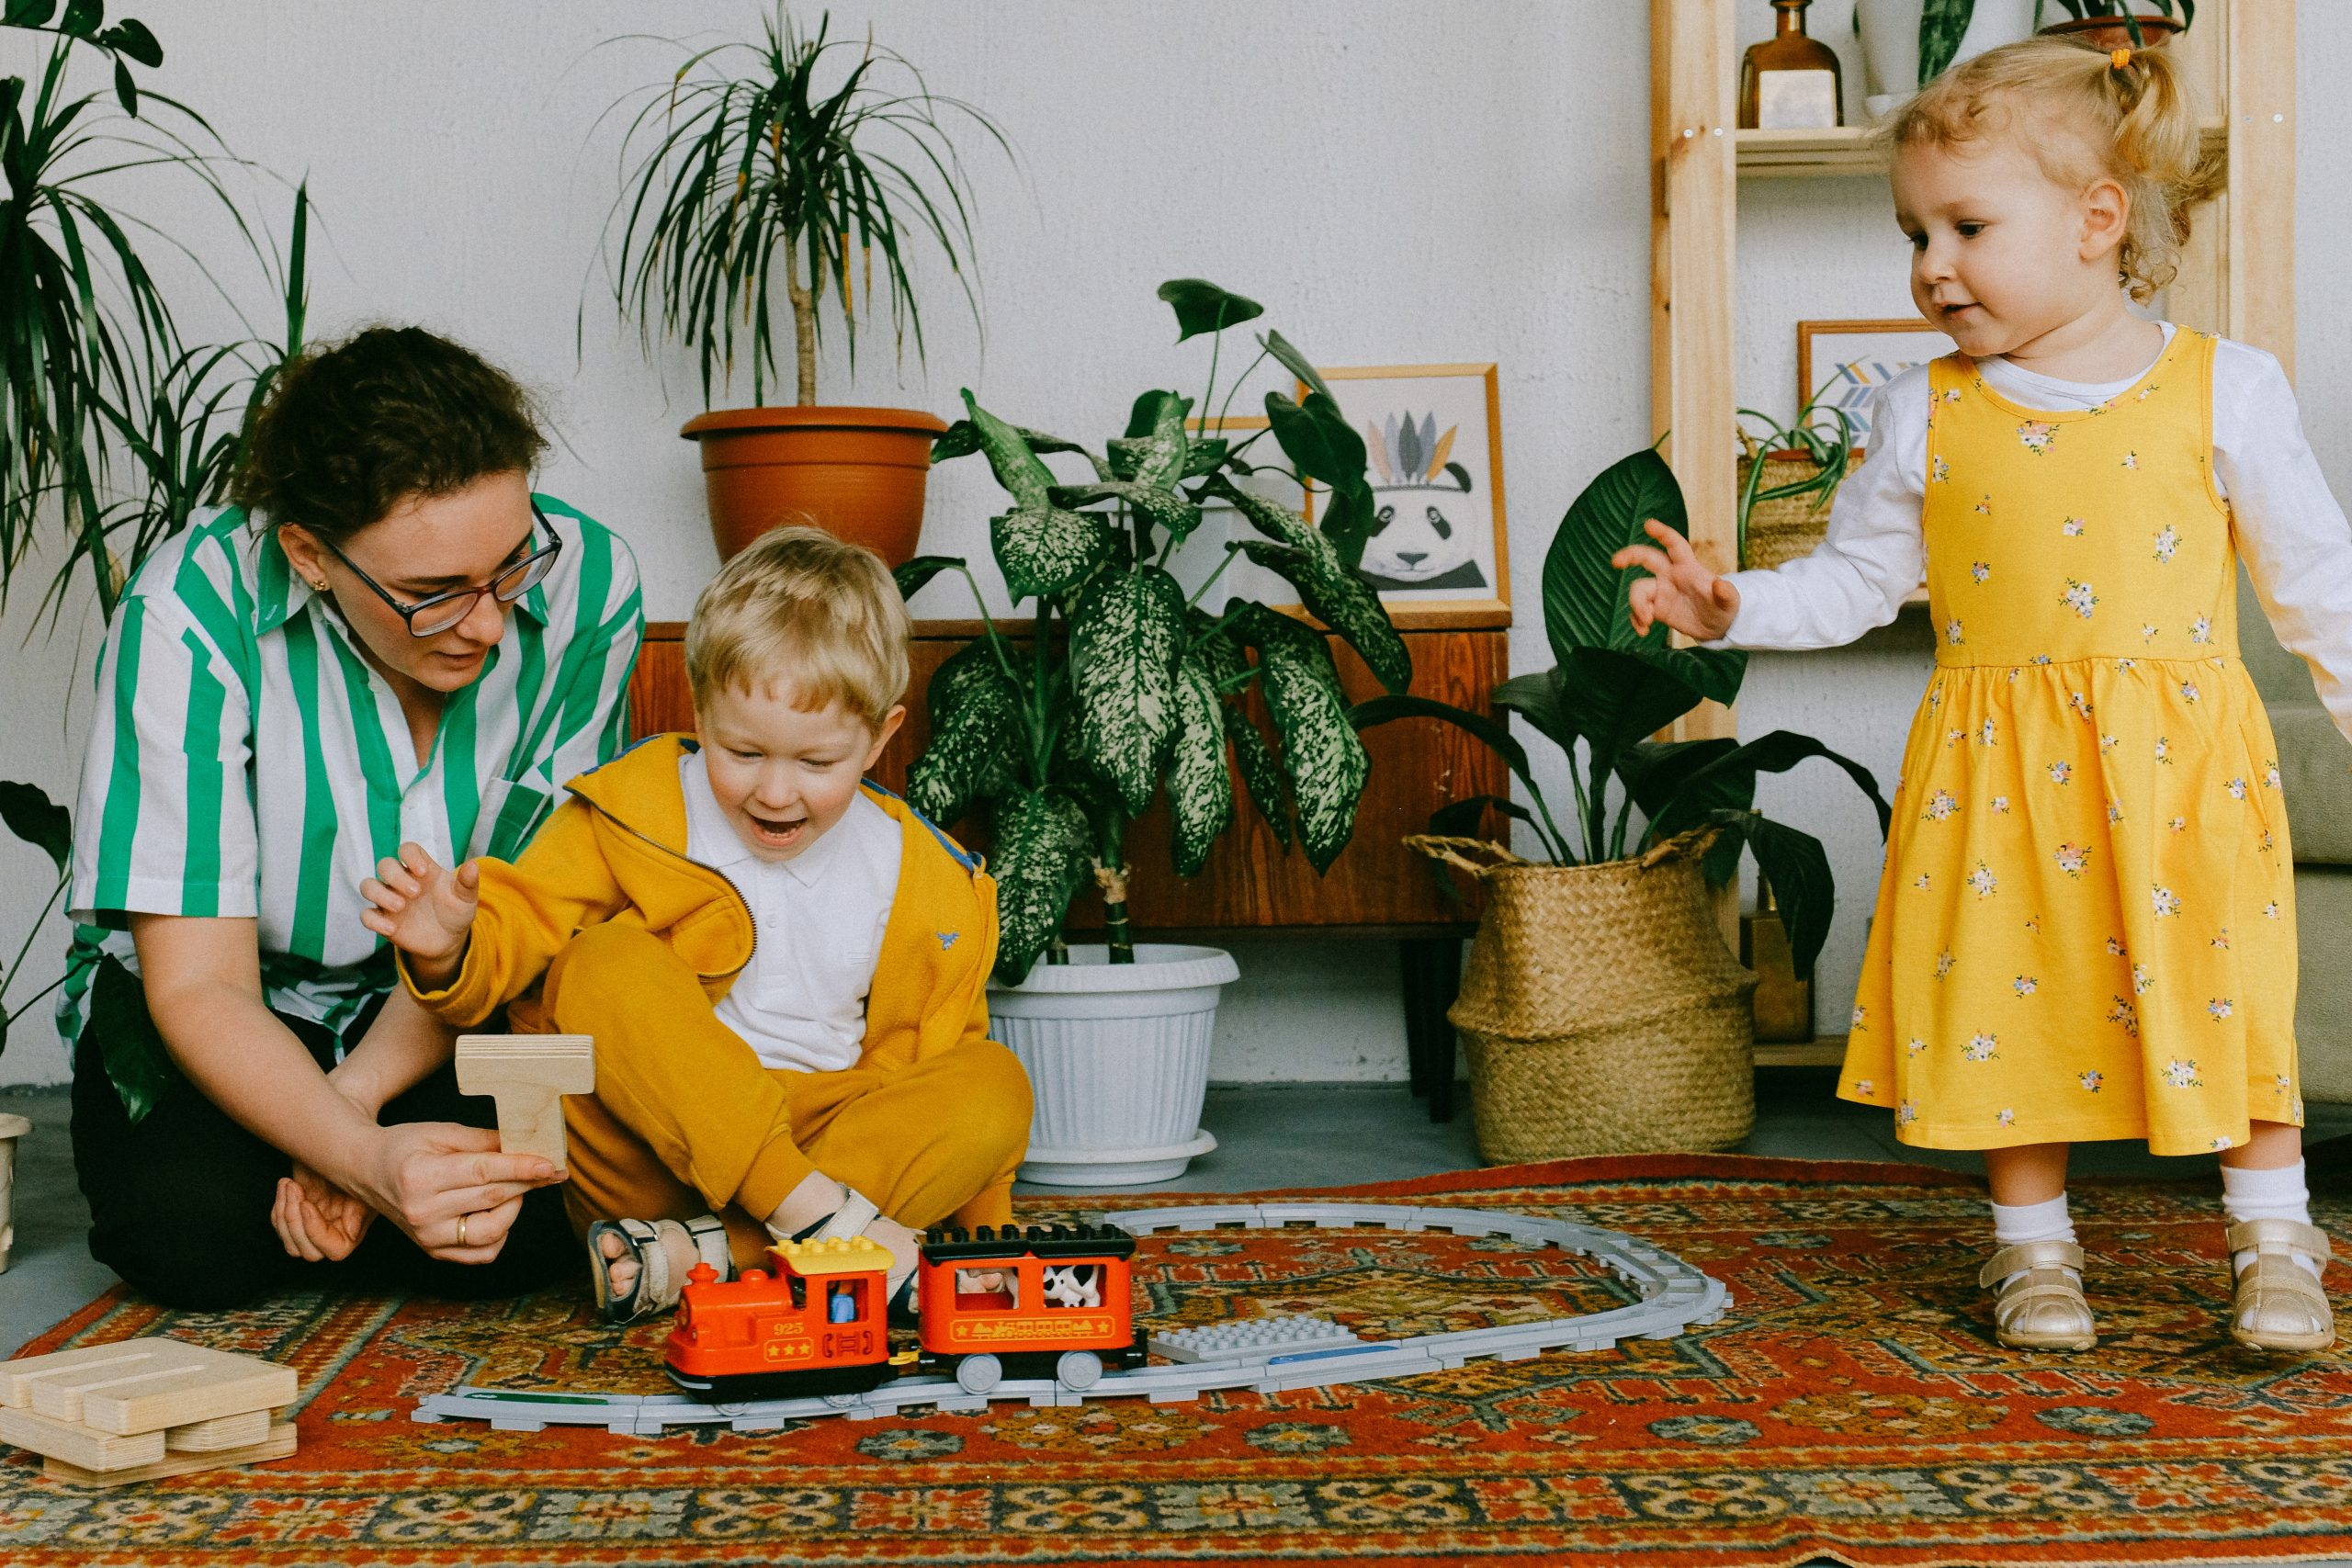 Childcare in Tier 2, Tier 3 and Tier 4: what's allowed?